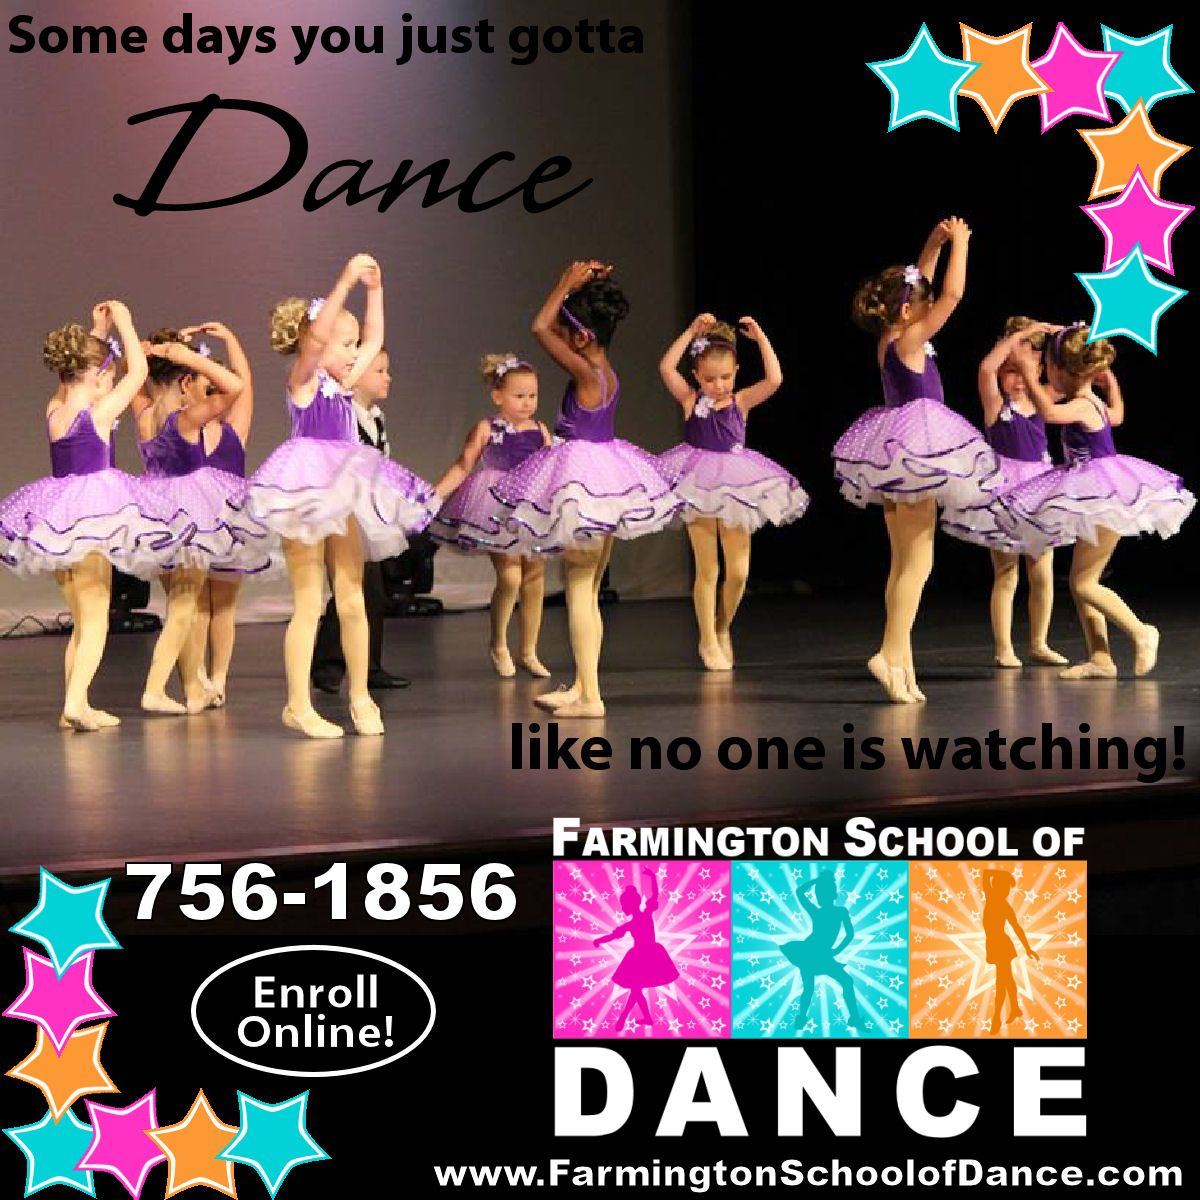 Dance Registration This Thursday 2pm 7pm Shoe Fitting Dancewear Available Don T Forget To Pin To Win Fsdanc Dance Dance Like No One Is Watching Dance Wear